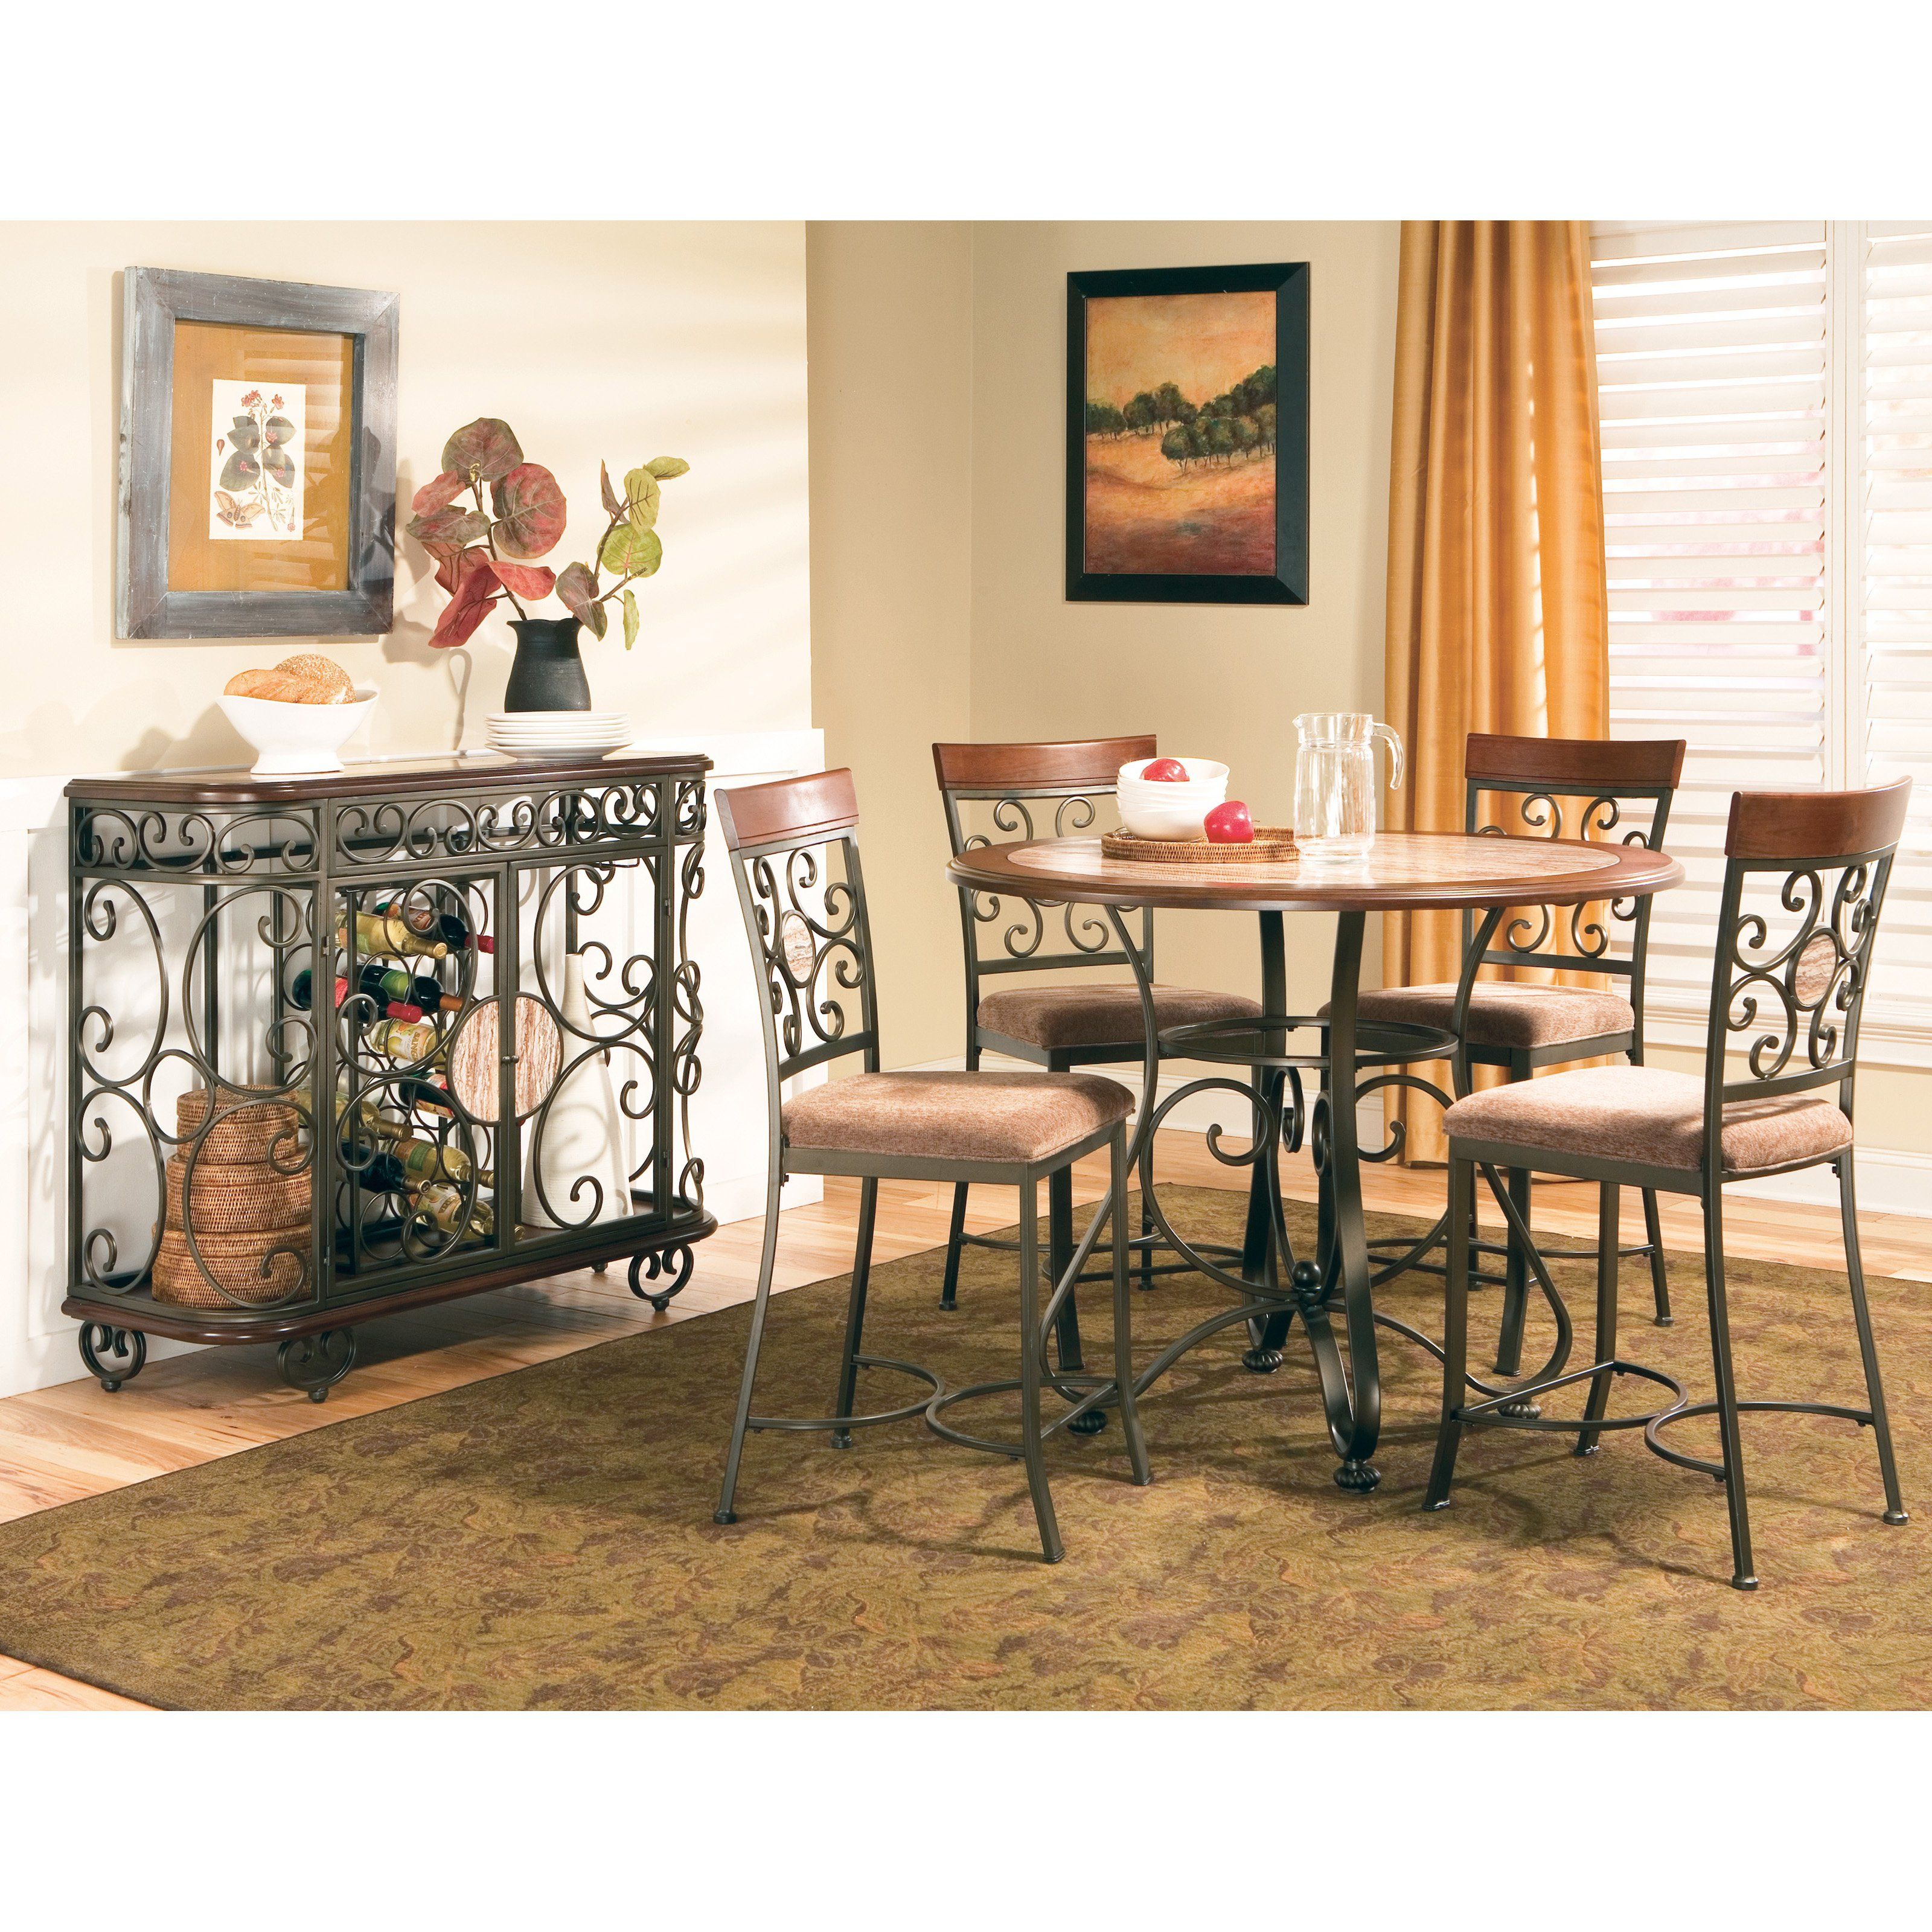 Steve Silver 5 Piece Thompson Counter Height Dining Table Set Cherry by Steve Silver Co